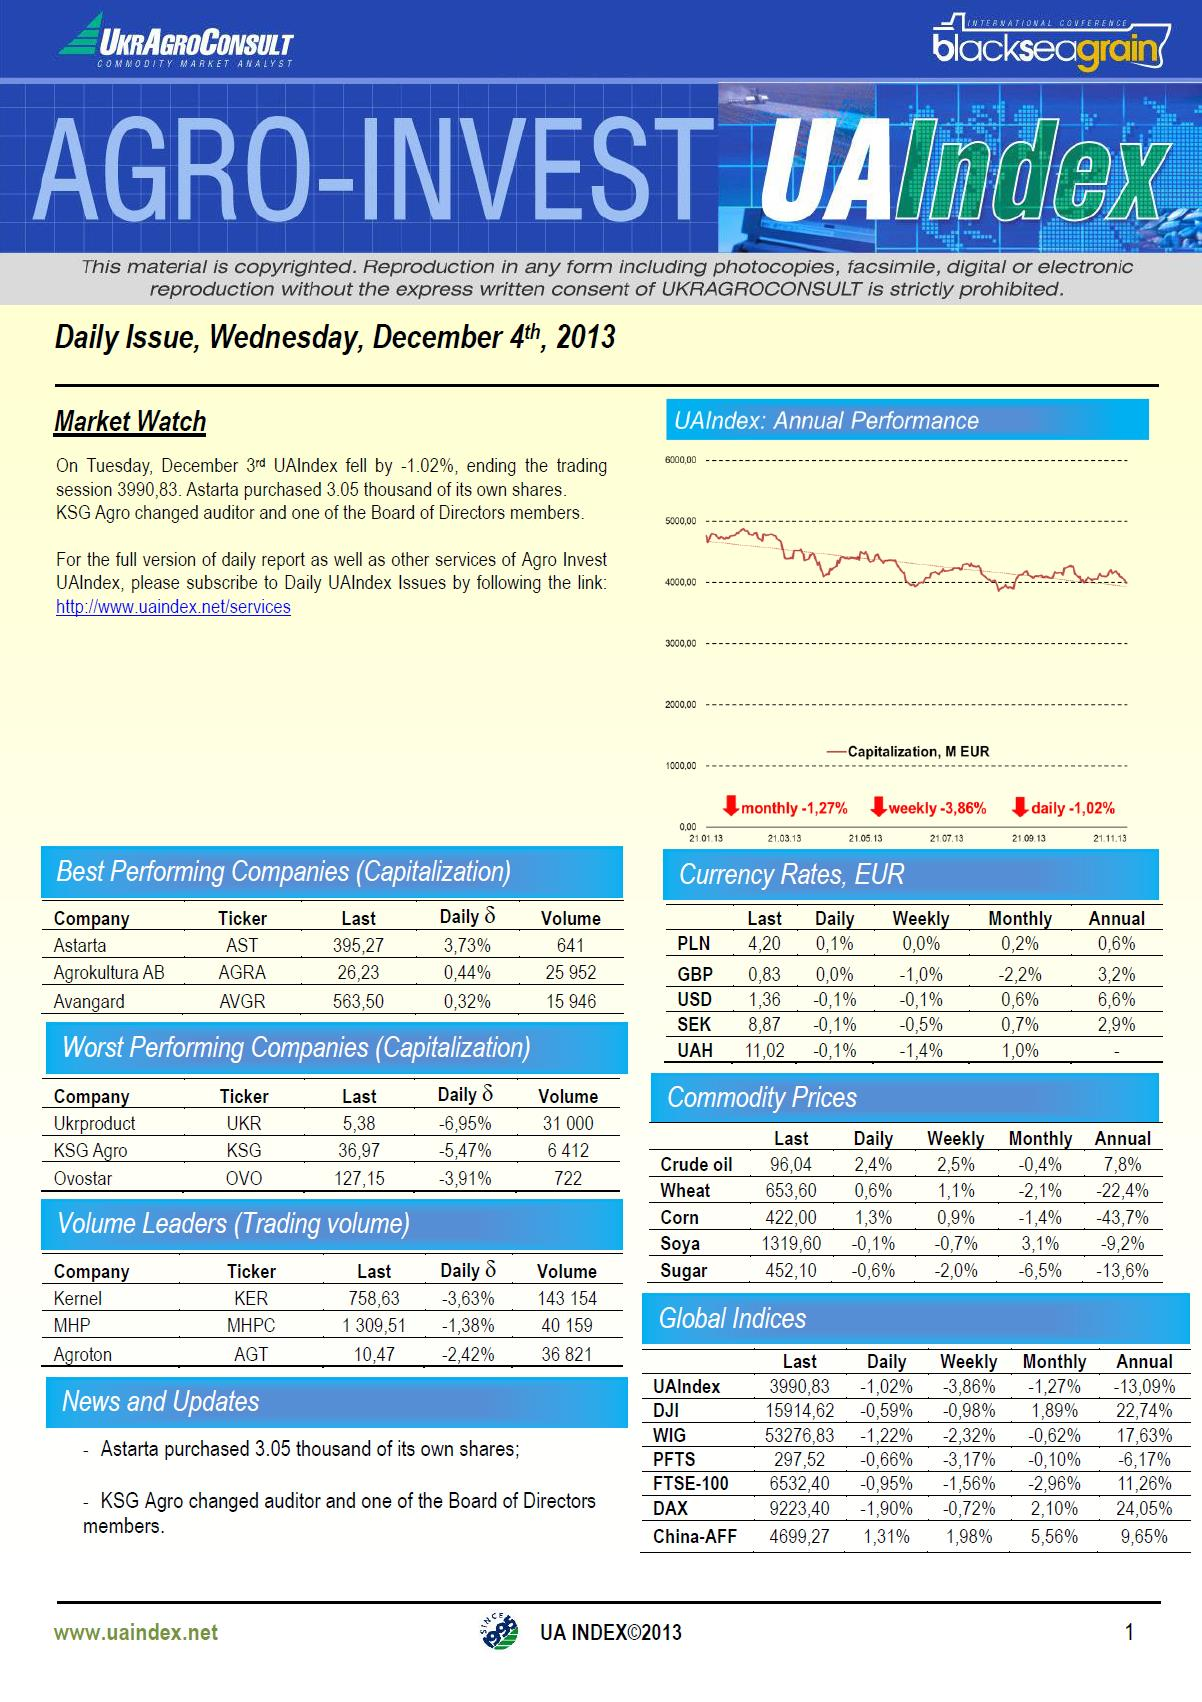 Sharp decline in Kernel leads UAIndex further into negative territory